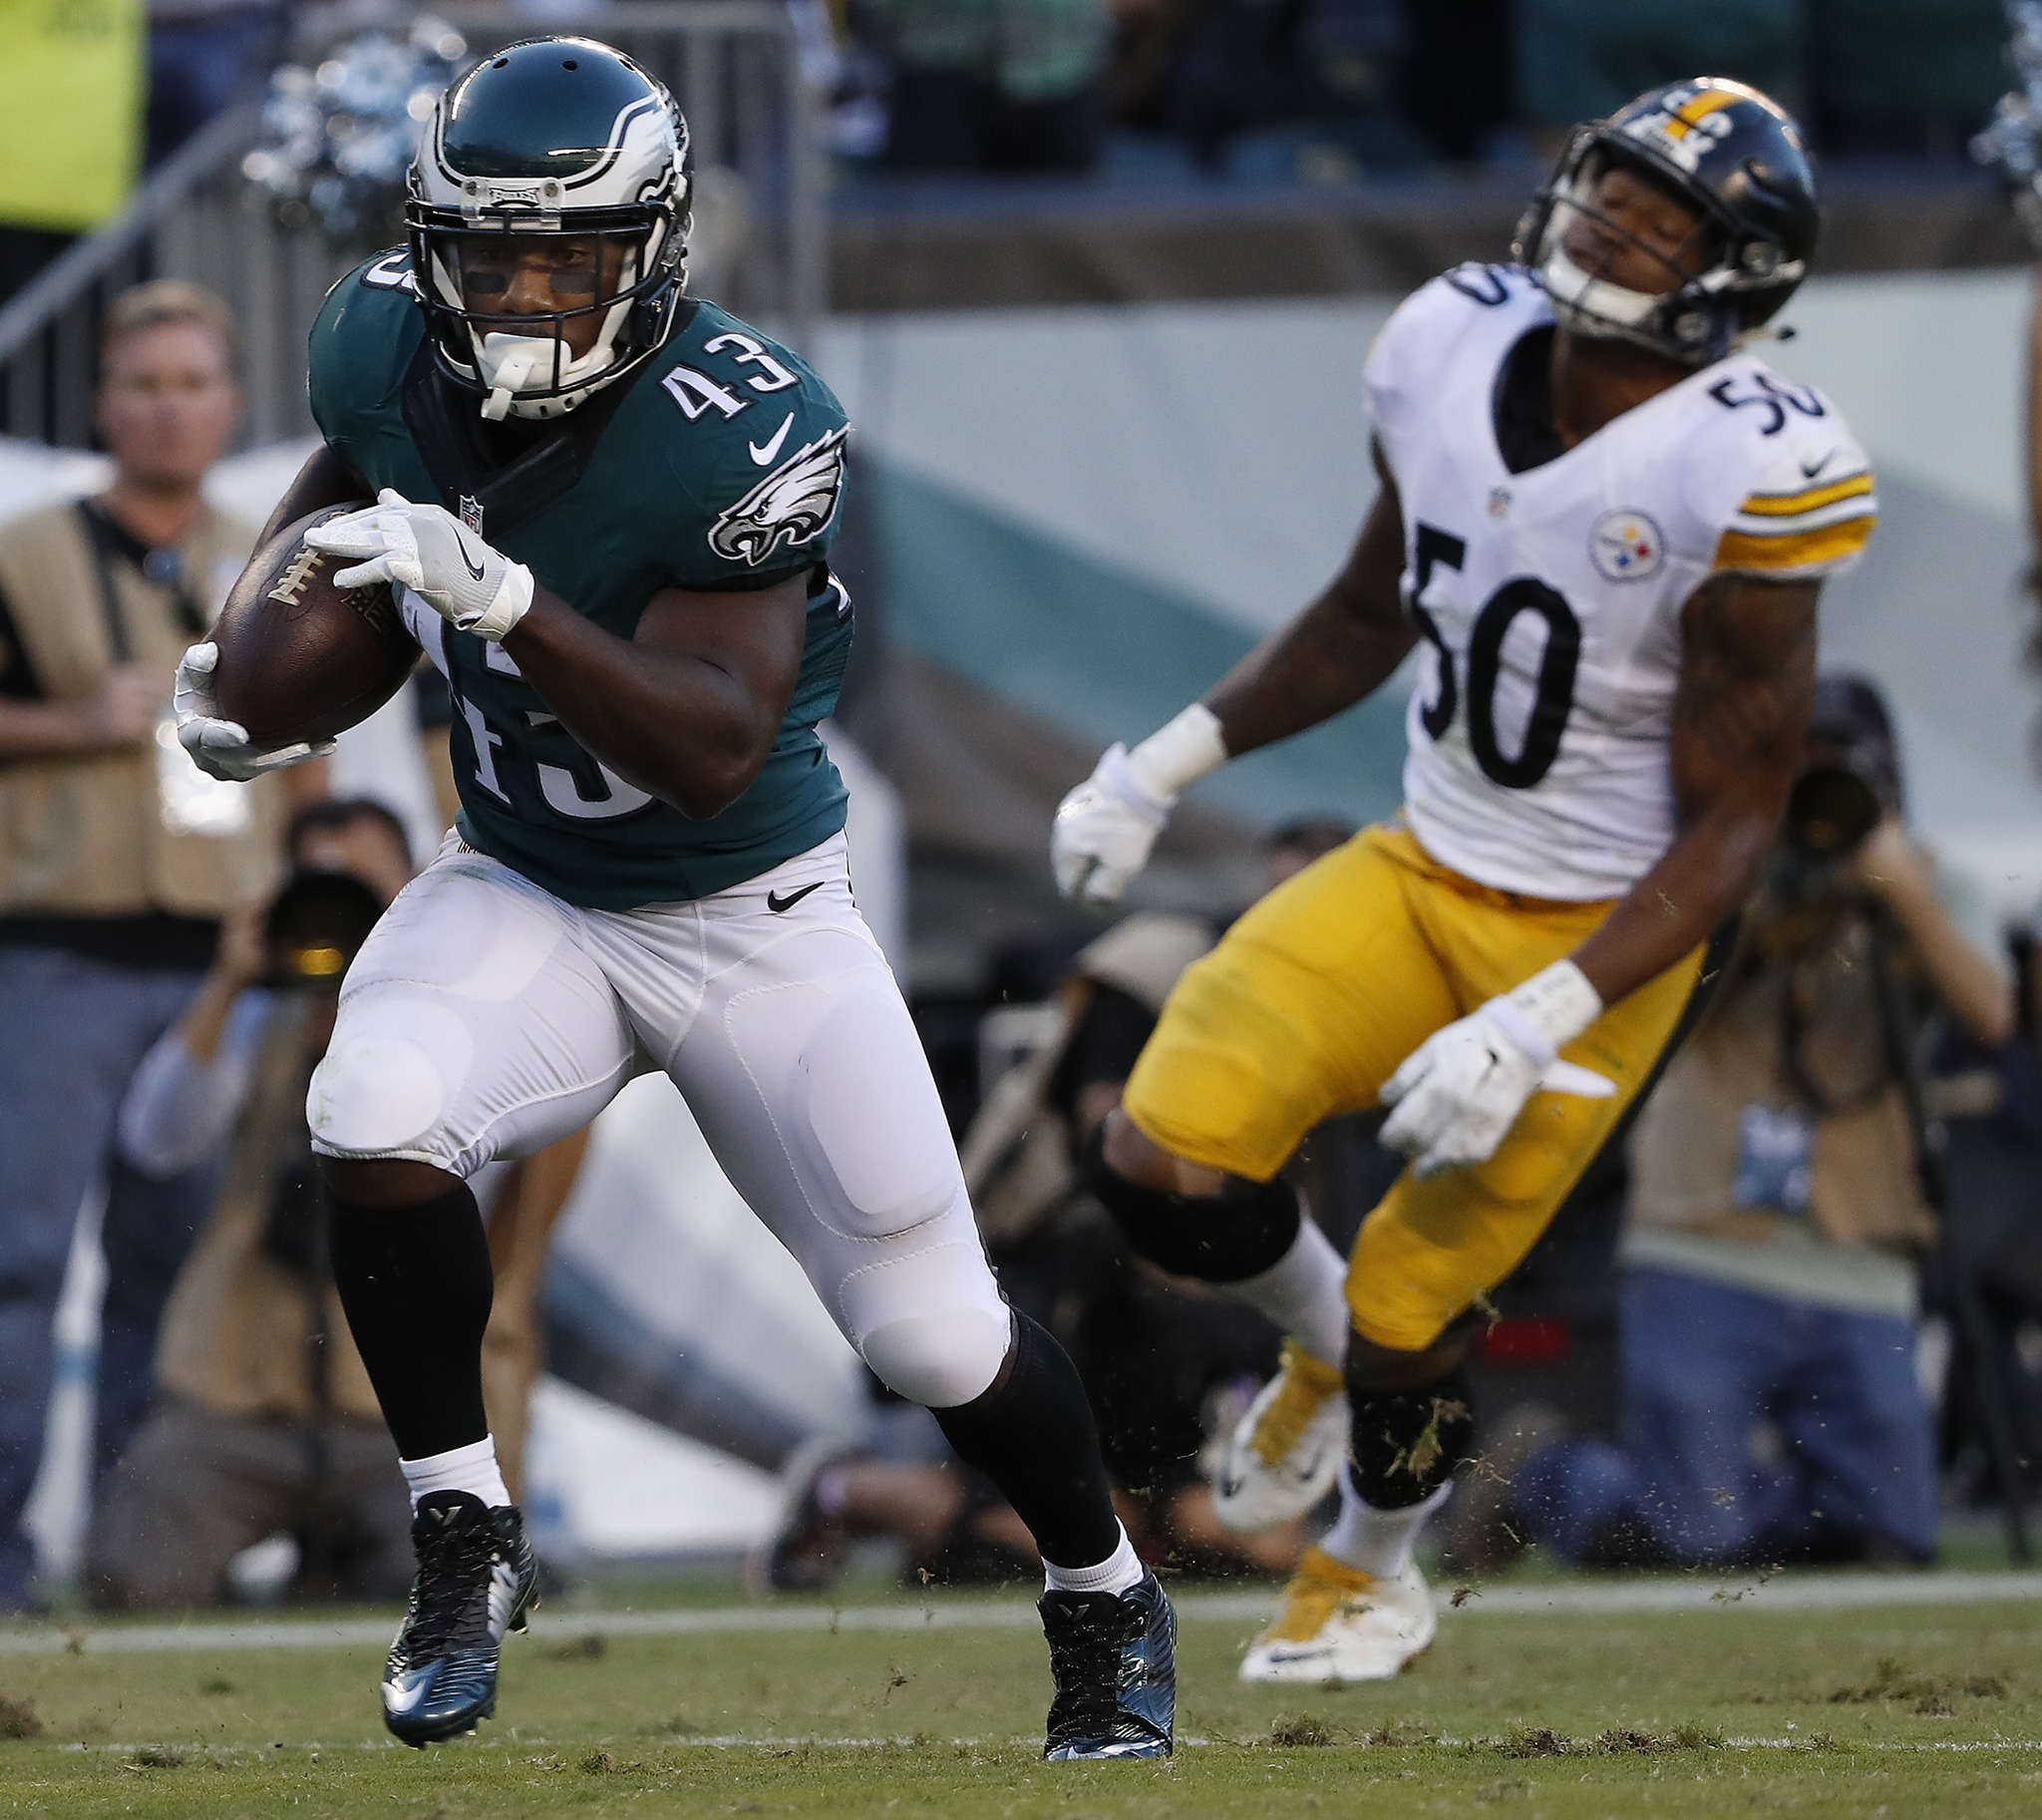 Eagles´ Darren Sproles outruns Steelers´ Ryan Shazier to score on 73-yard catch-and-run early in third quarter.